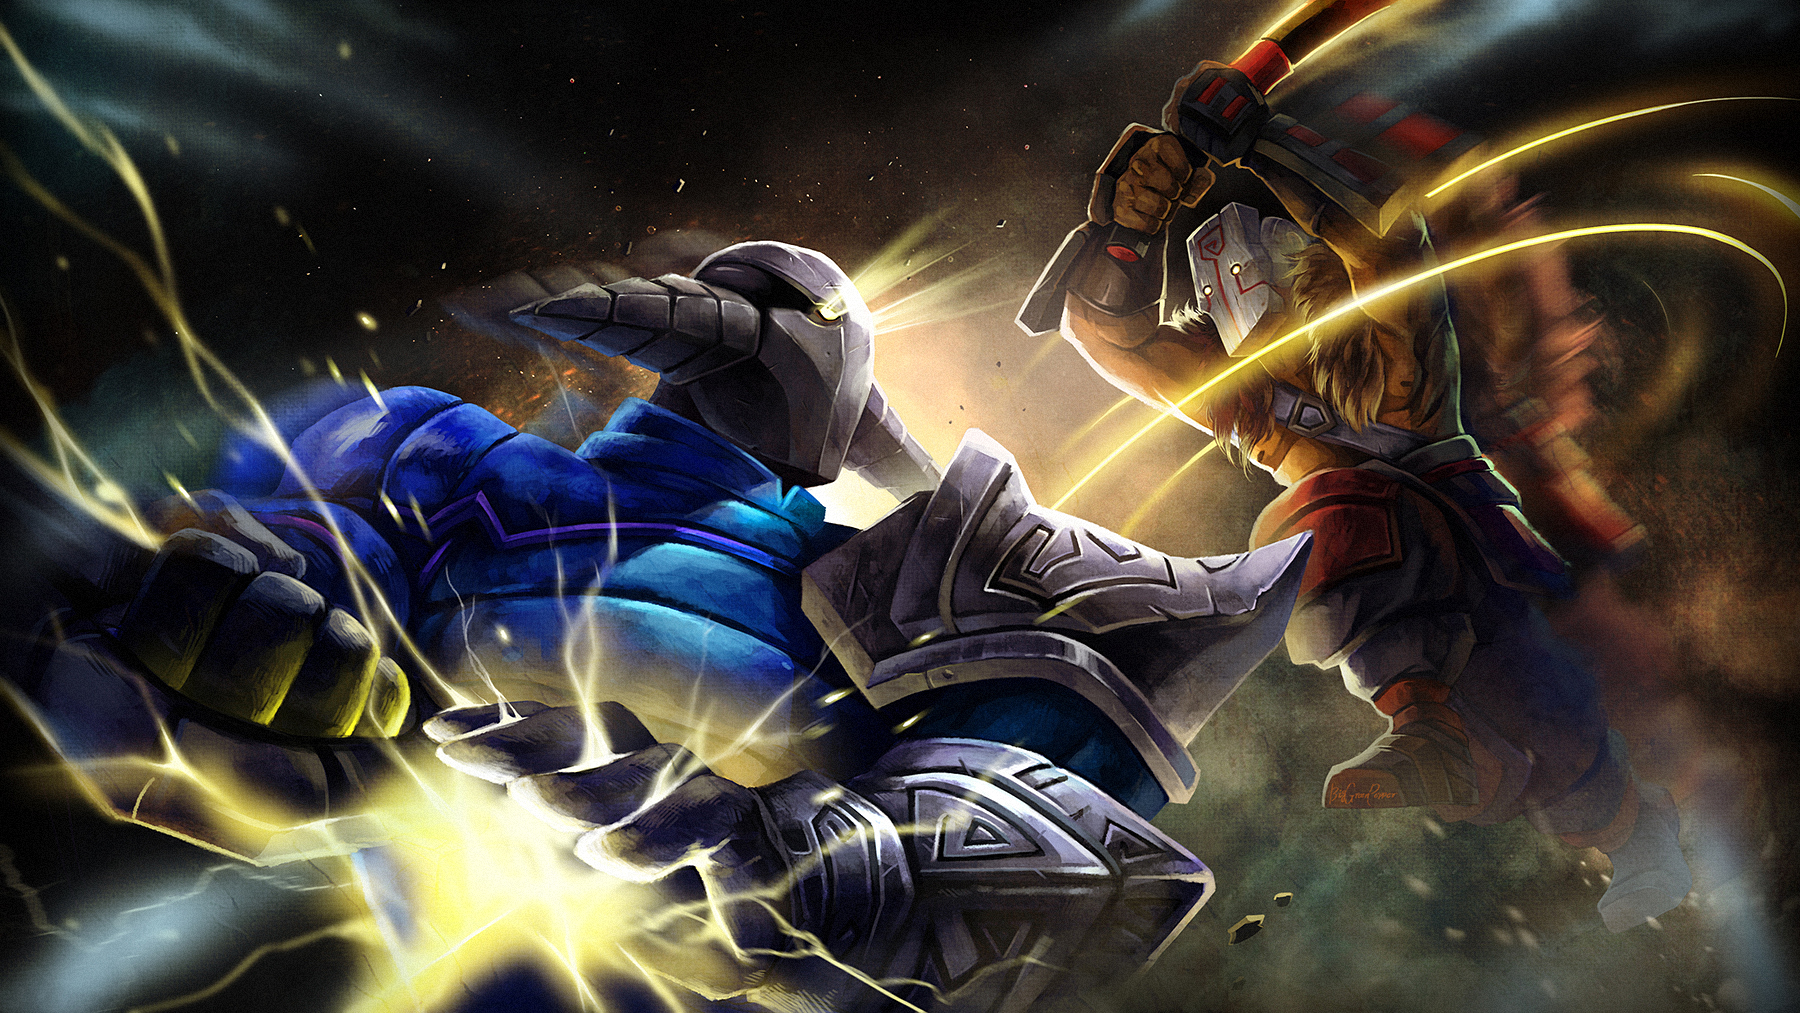 dota 2 jugg vs sven by biggreenpepper on deviantart